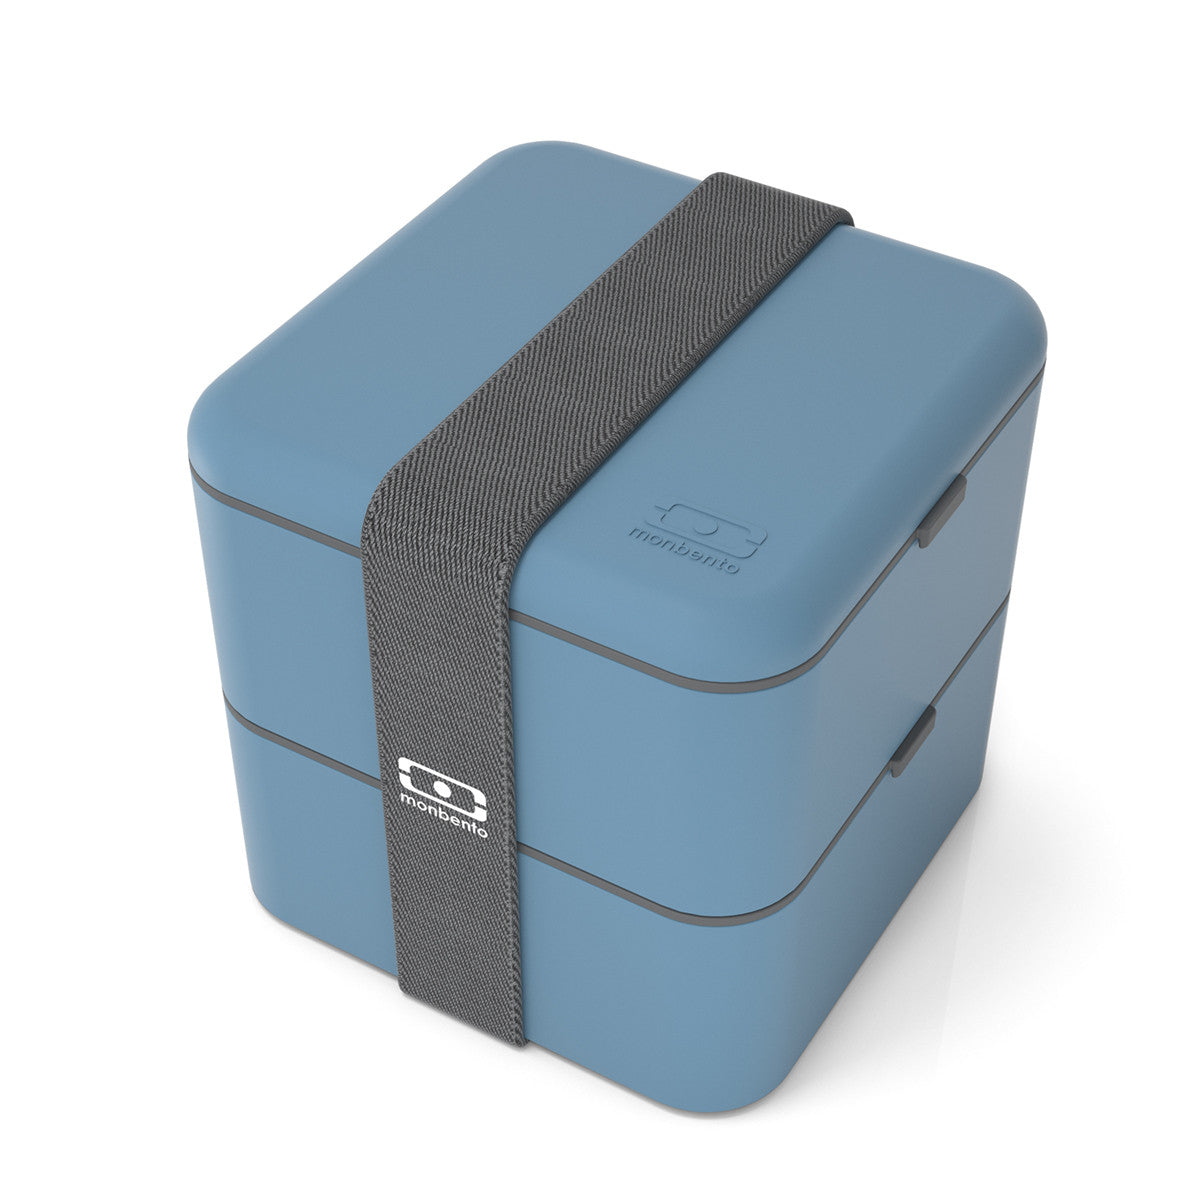 Monbento Square Lunch Box 1.7L Denim